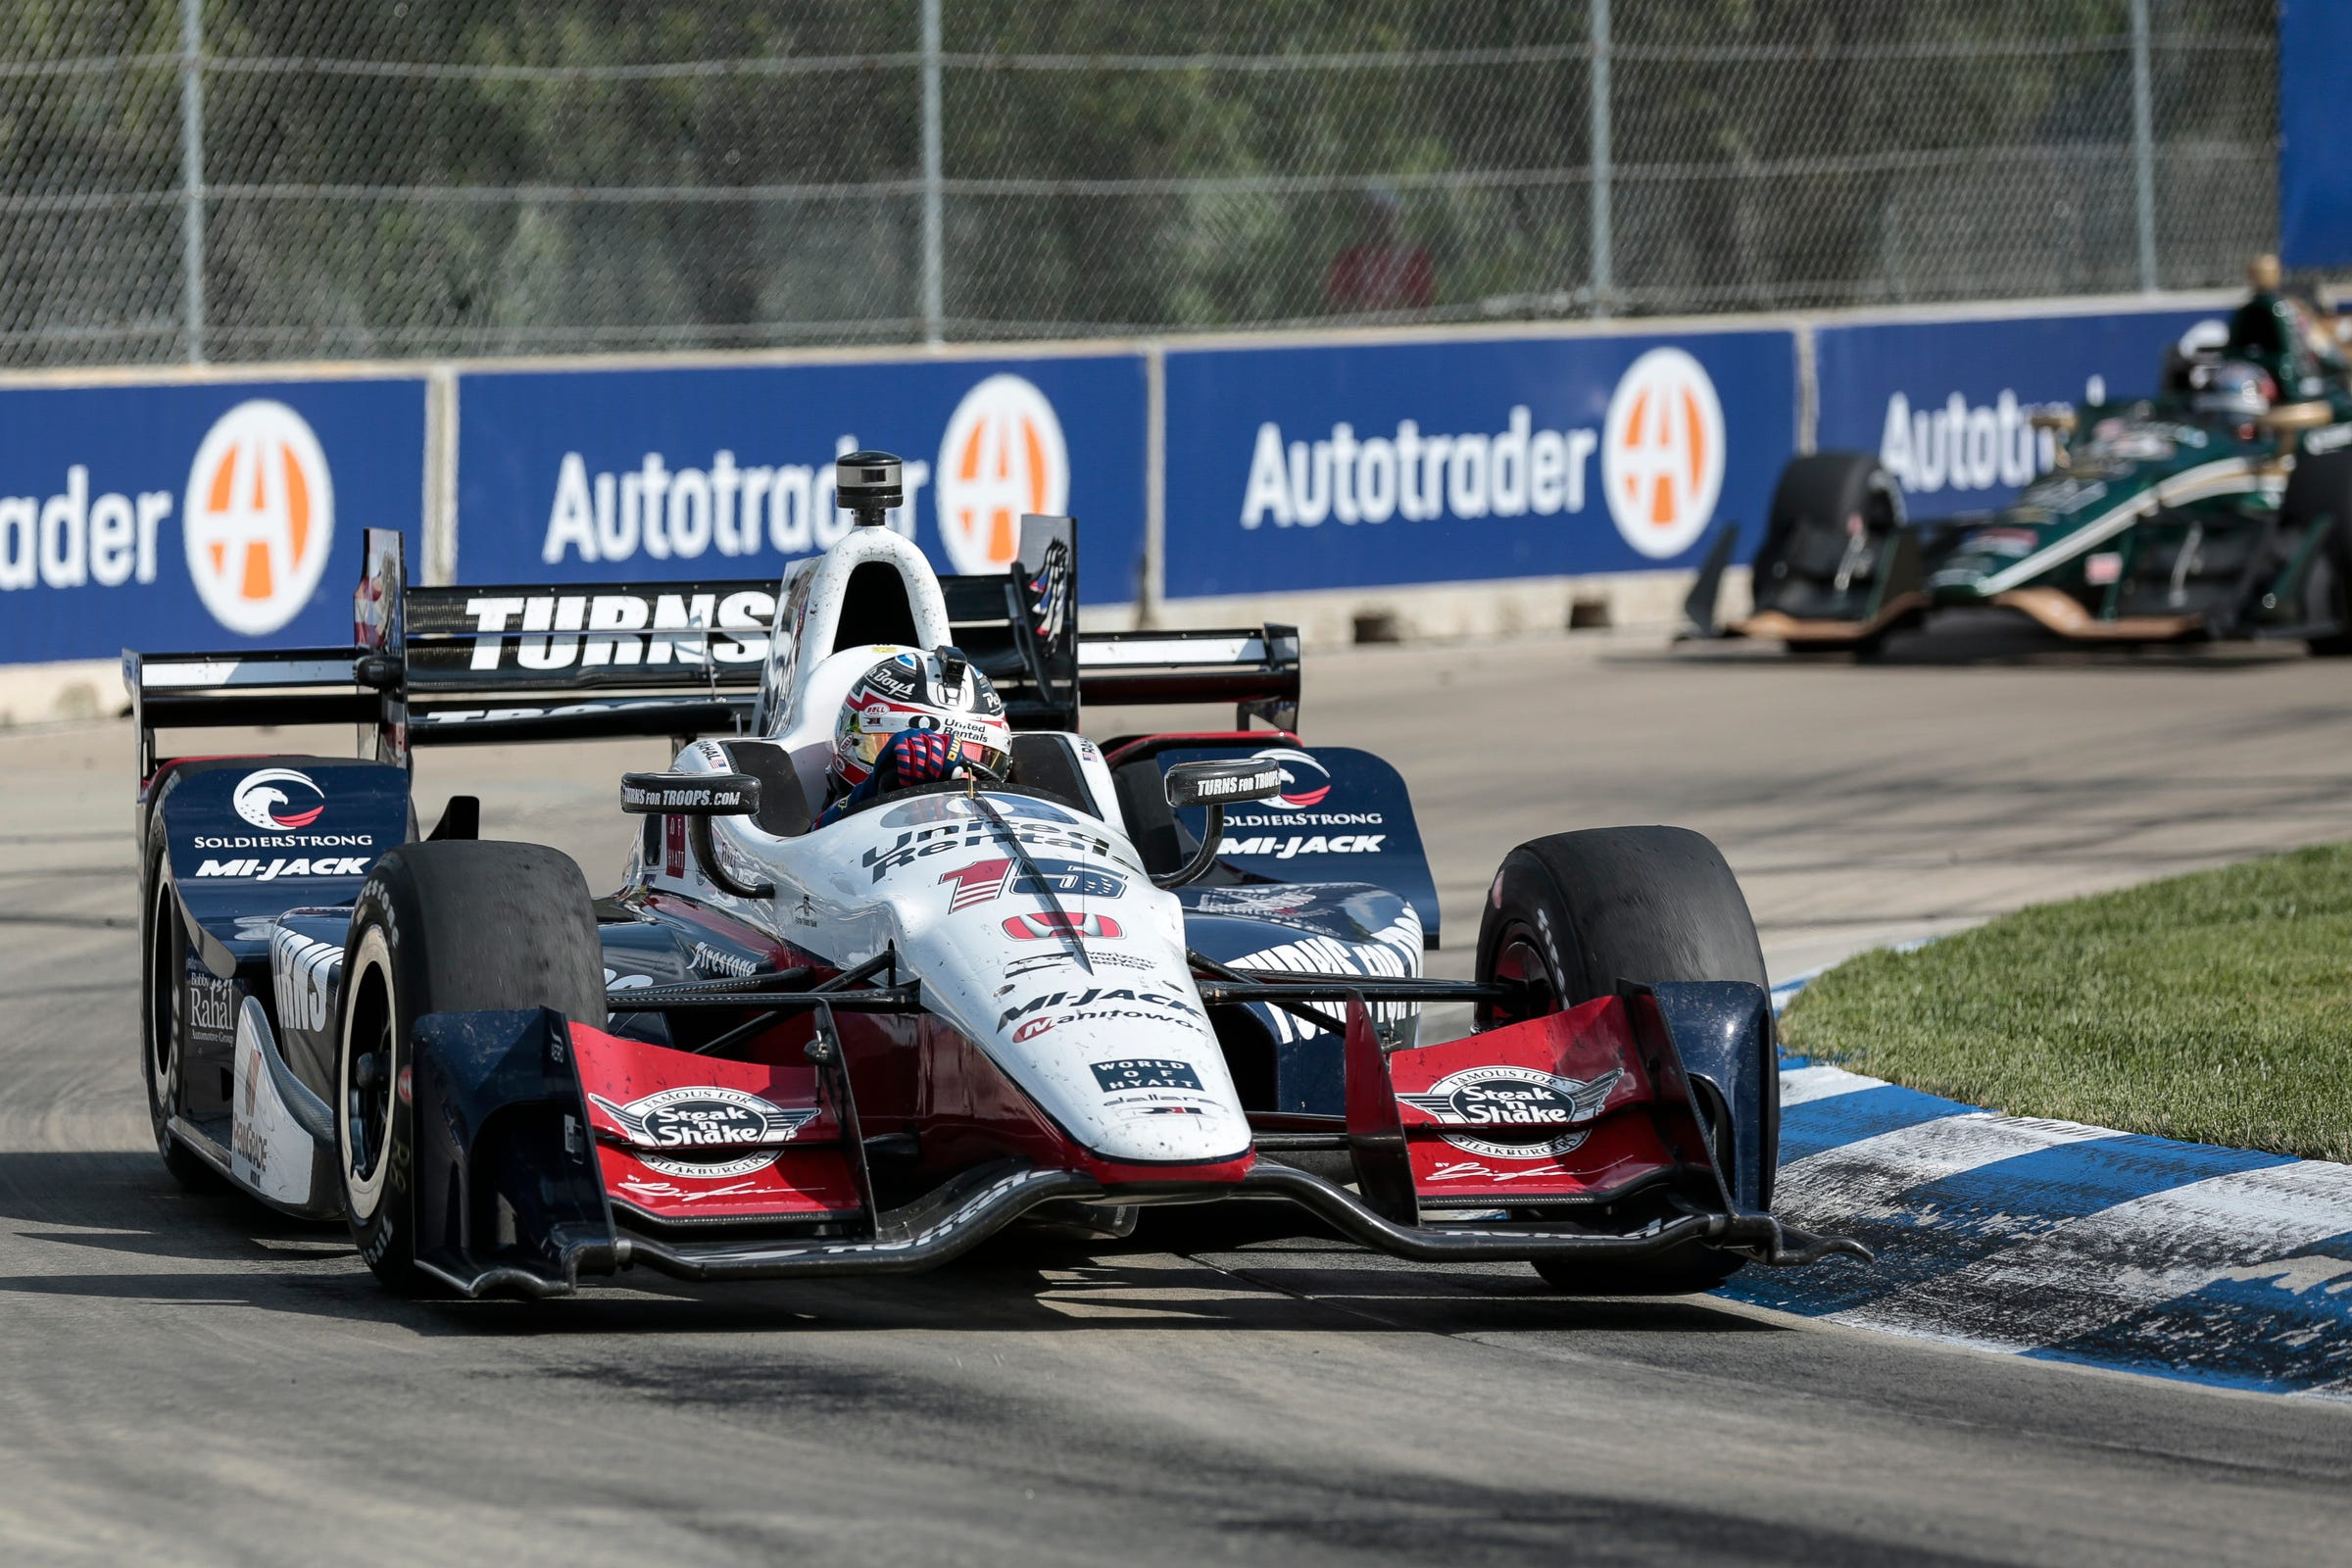 Tickets on sale for 2018 Chevrolet Detroit Grand Prix